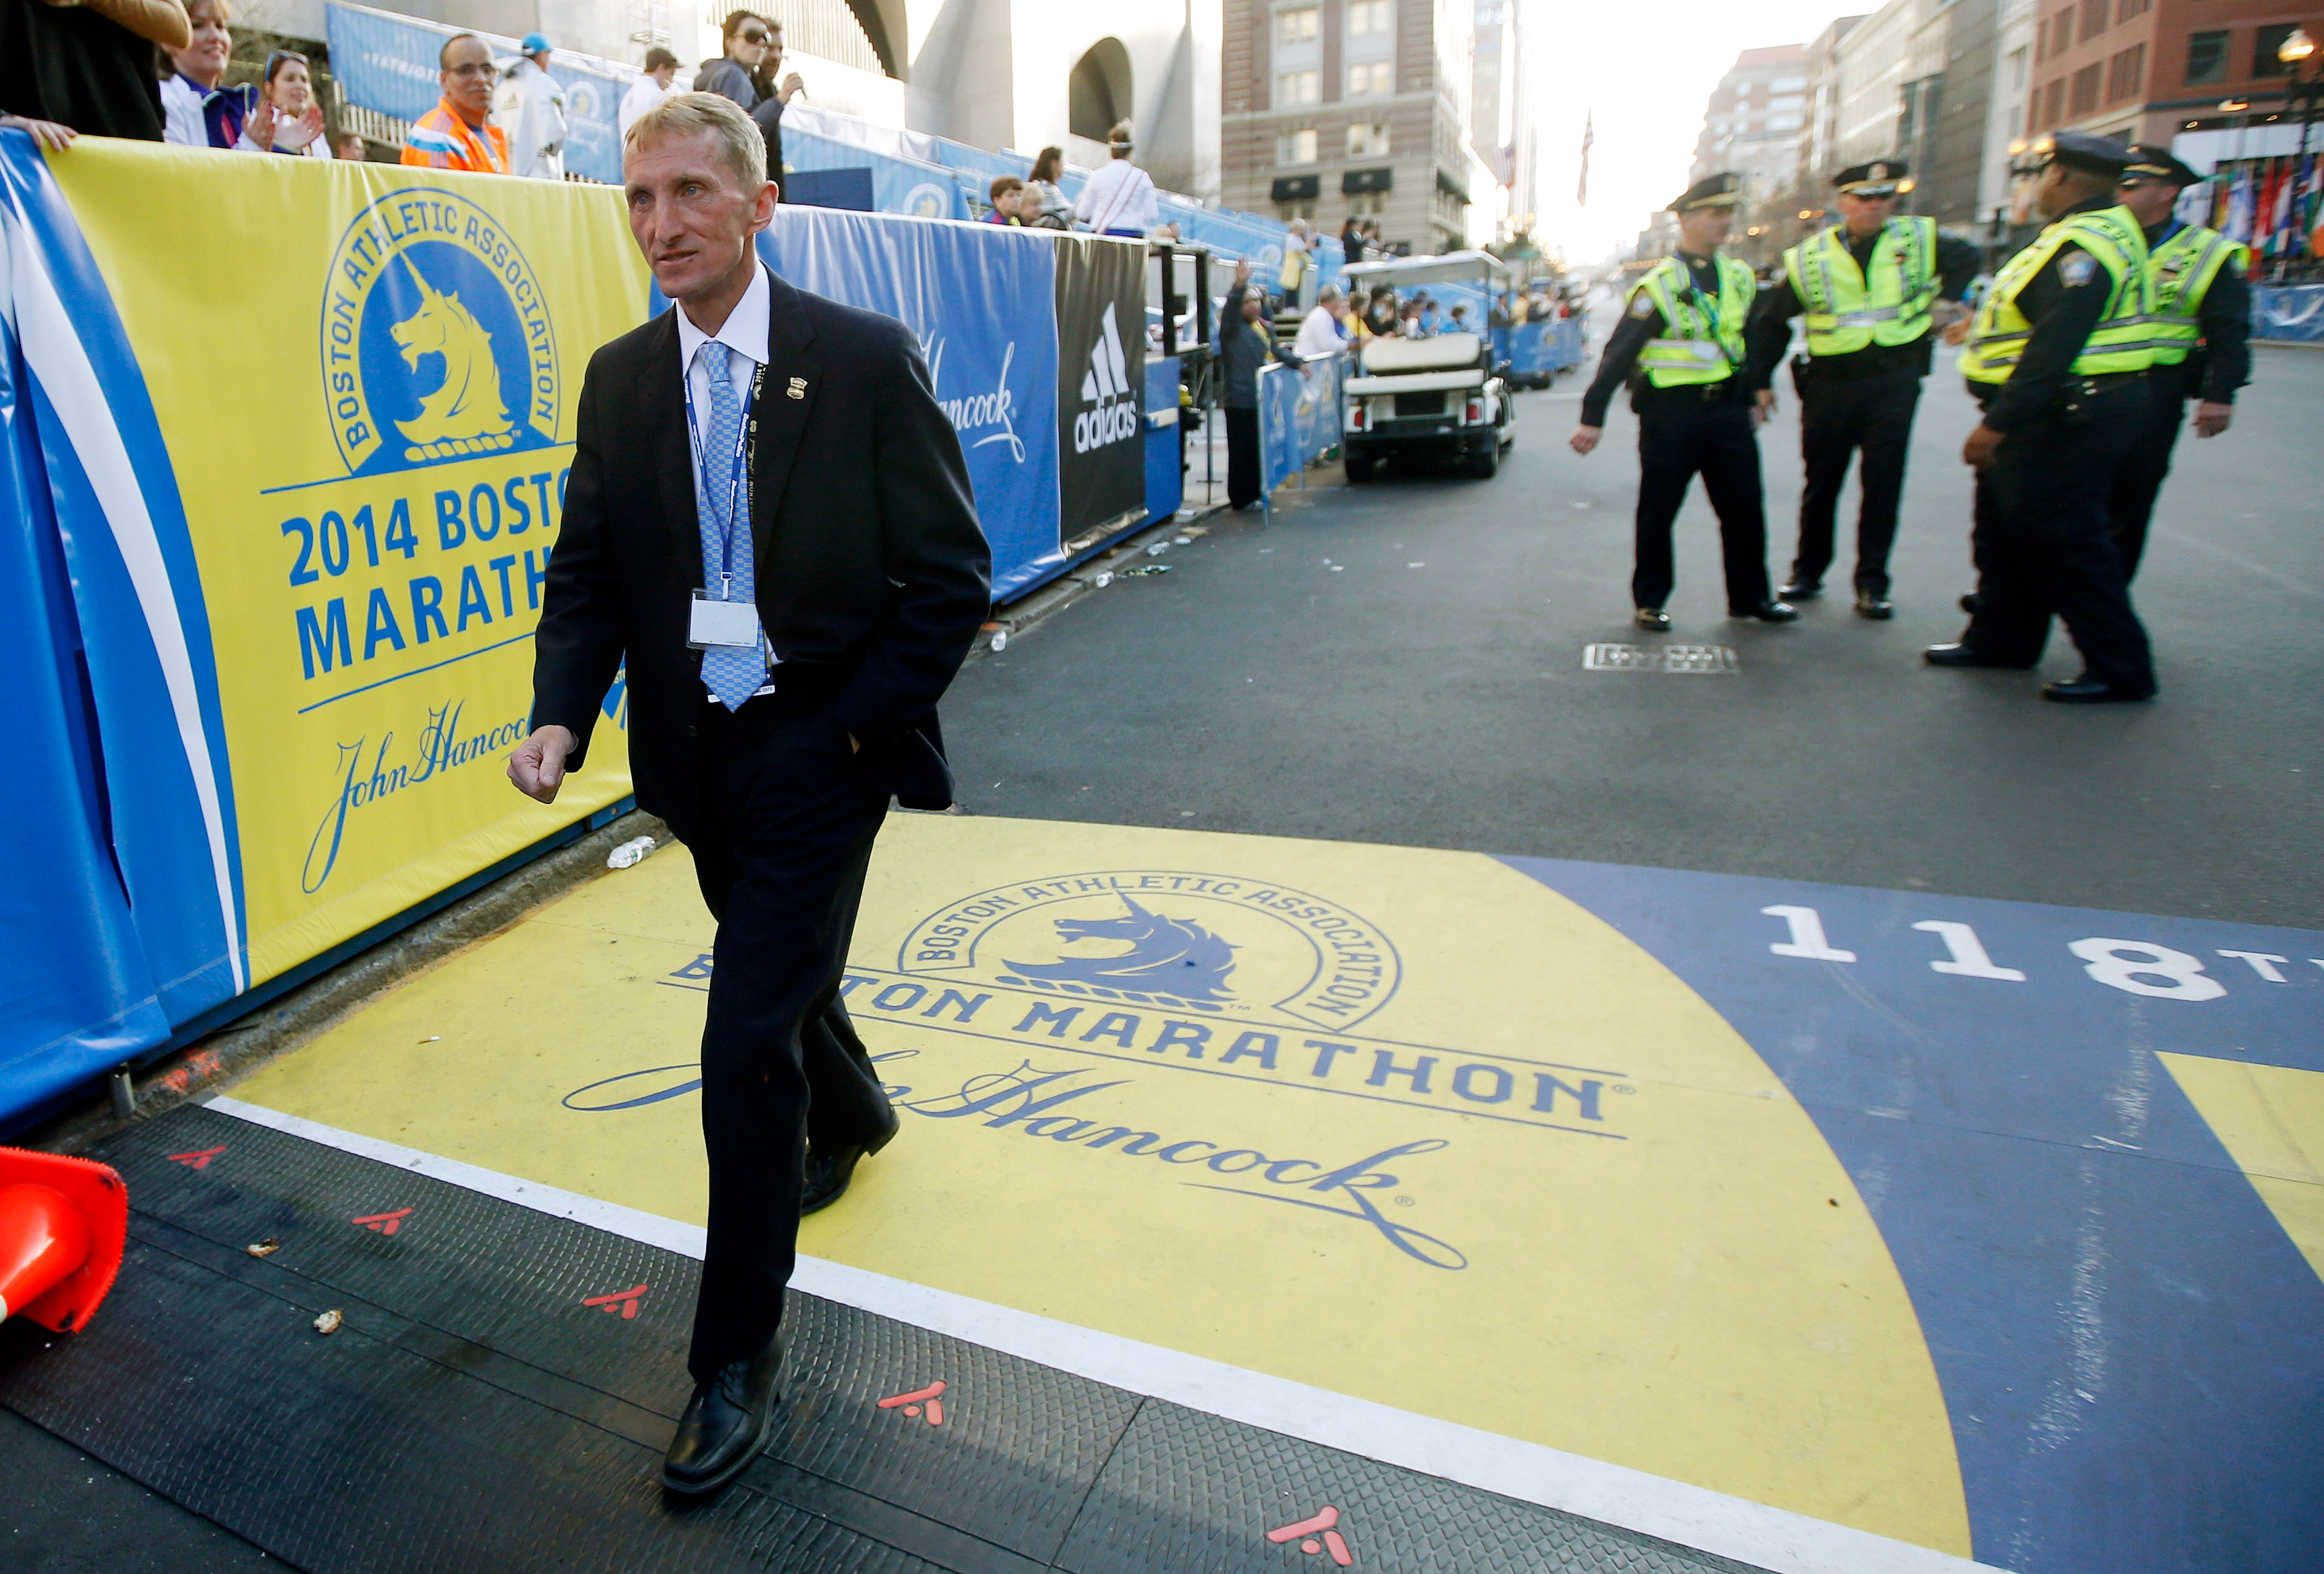 FILE - In this Monday April 21, 2014 file photo, Boston Police Commissioner William Evans walks across the finish line after the 118th Boston Marathon in Boston. The recent bombing in Brussels has heightened security concerns for this year's Boston Marathon. Evans, who is an accomplished athlete, said he will sit out the race because he says he's needed amid increased security following the attacks in Brussels. (AP Photo/Elise Amendola, File)